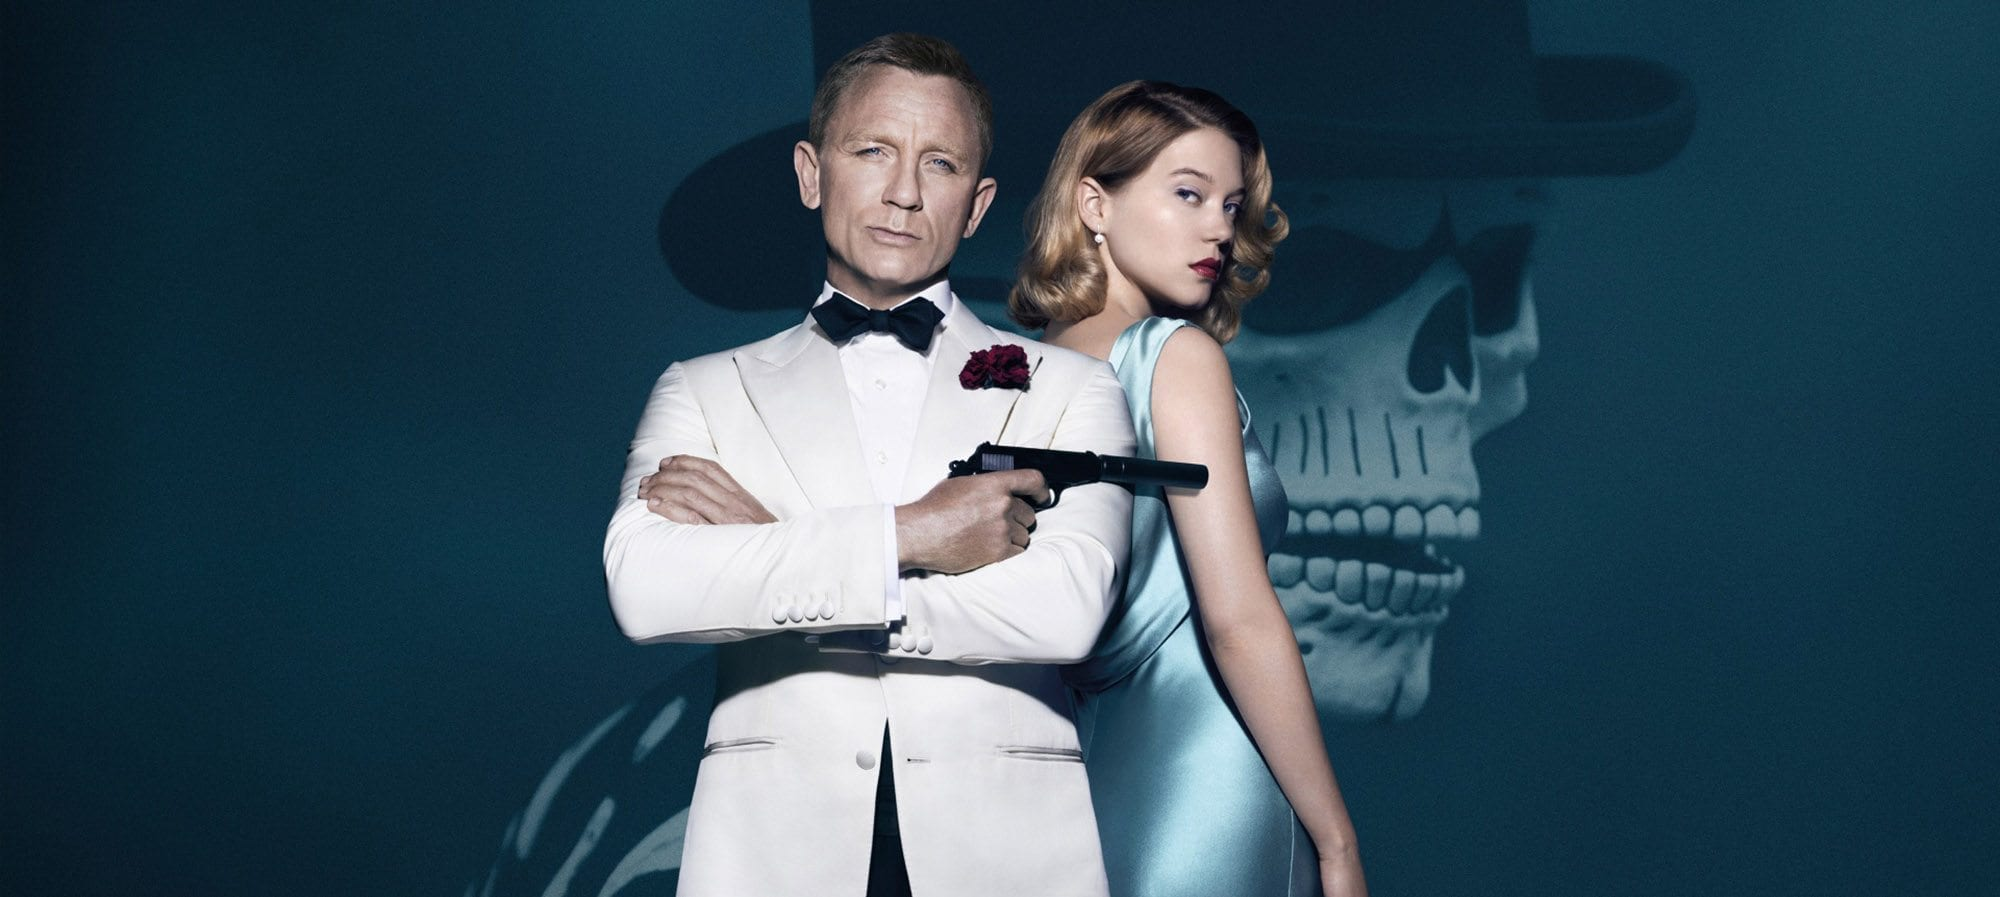 """Denis Villeneuve passes on 'Bond 25': The director of 'Blade Runner 2049' has passed on stepping into the world of British Secret Service agent James Bond, citing that he is """"spoiled"""" with this adaptation of Frank Herbert's 'Dune'."""